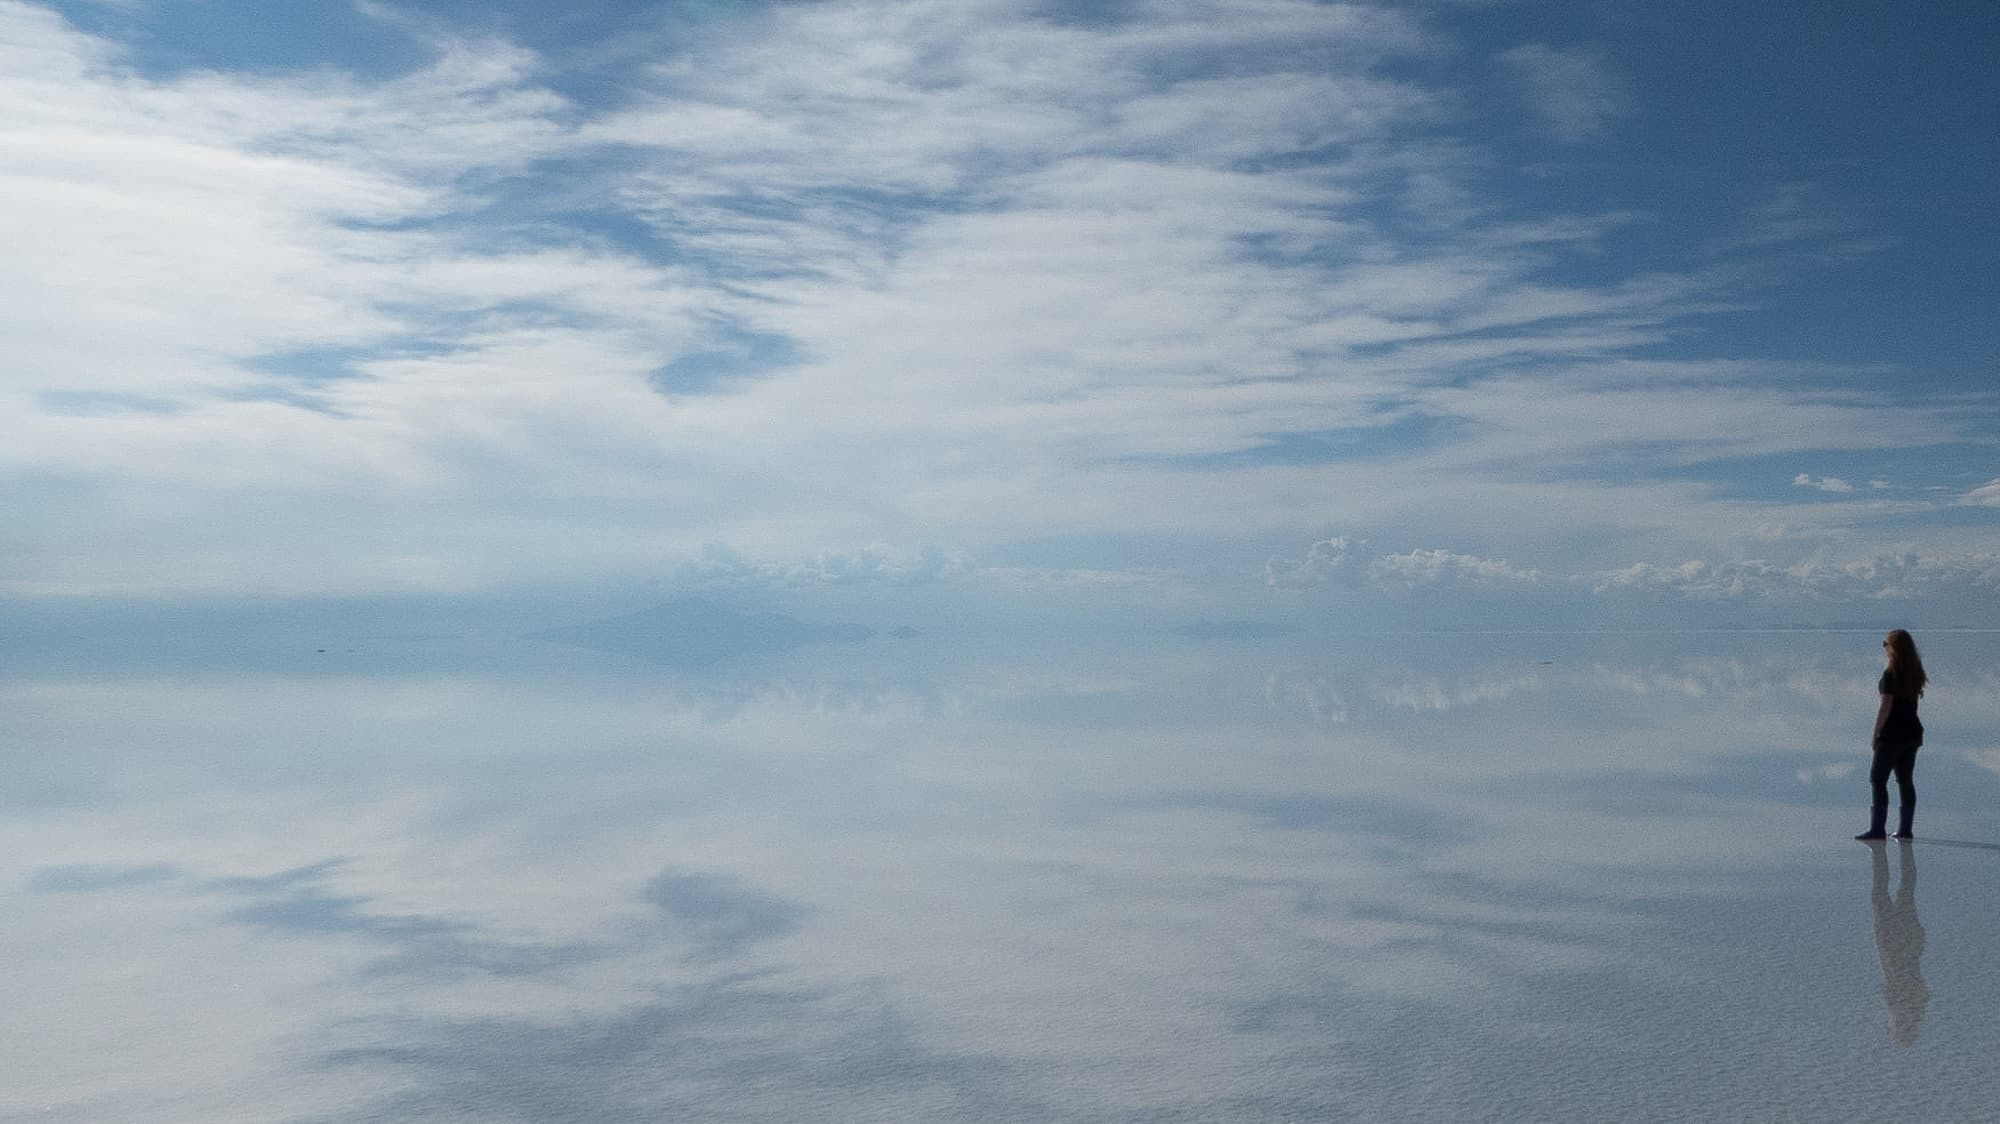 Sheree Stands At The Right Hand Side Of Reflected Blue Sky With Clouds on The Salar de Uyuni Salt Flats, Bolivia